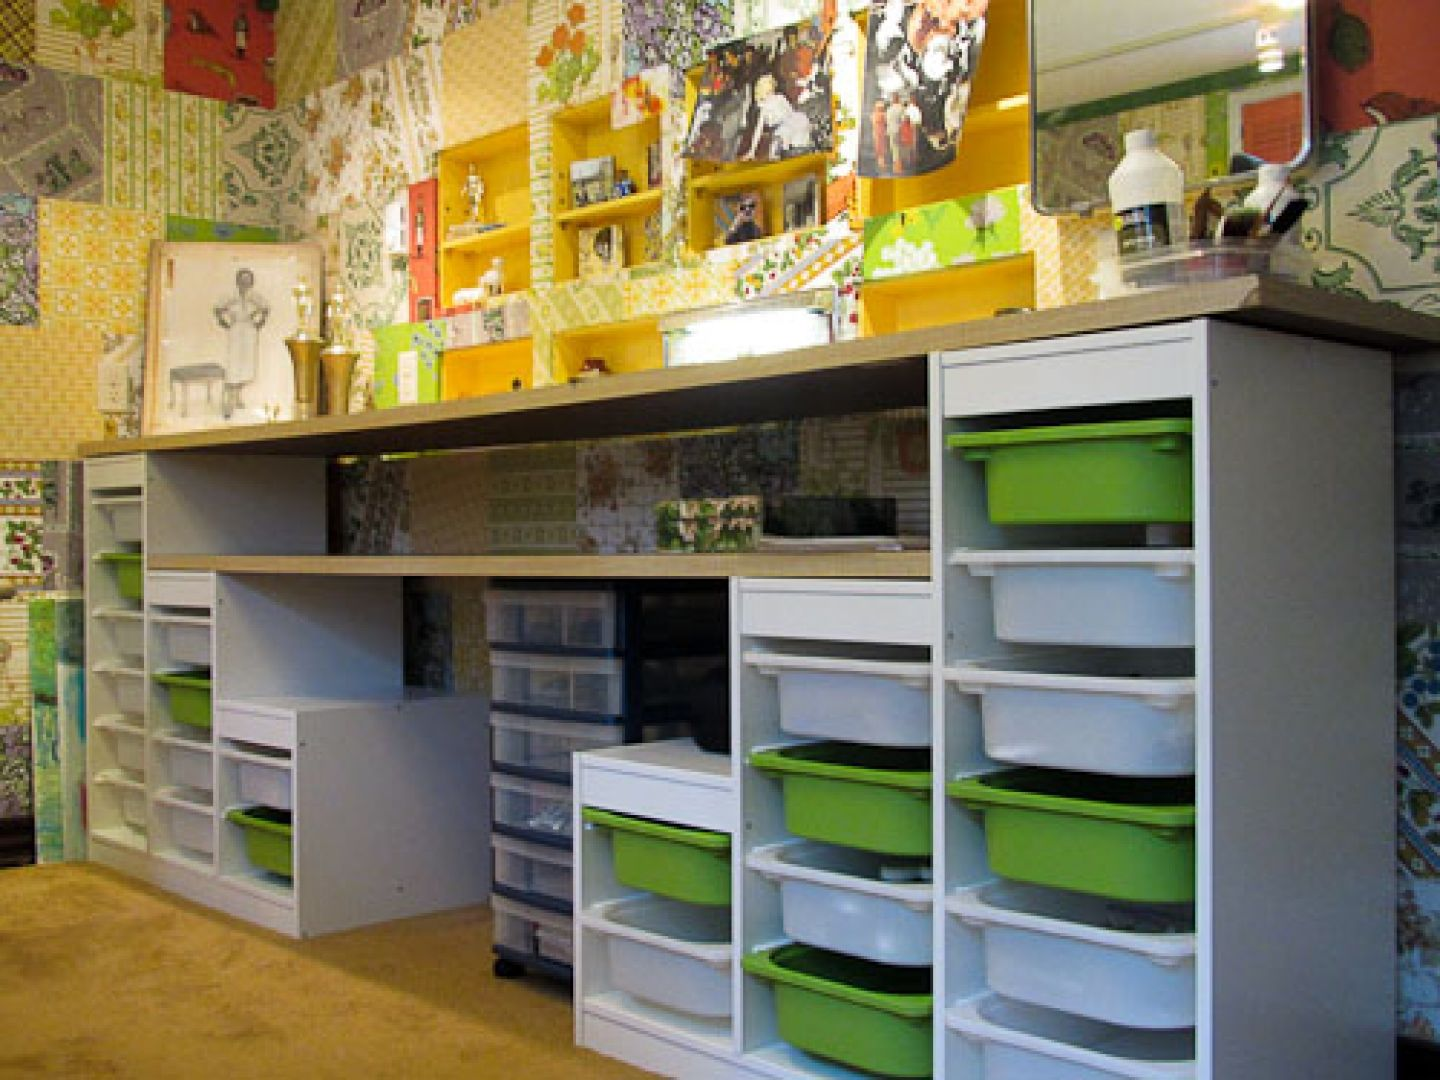 Small craft room designs bedroom ideas ikea boys for Building a craft room